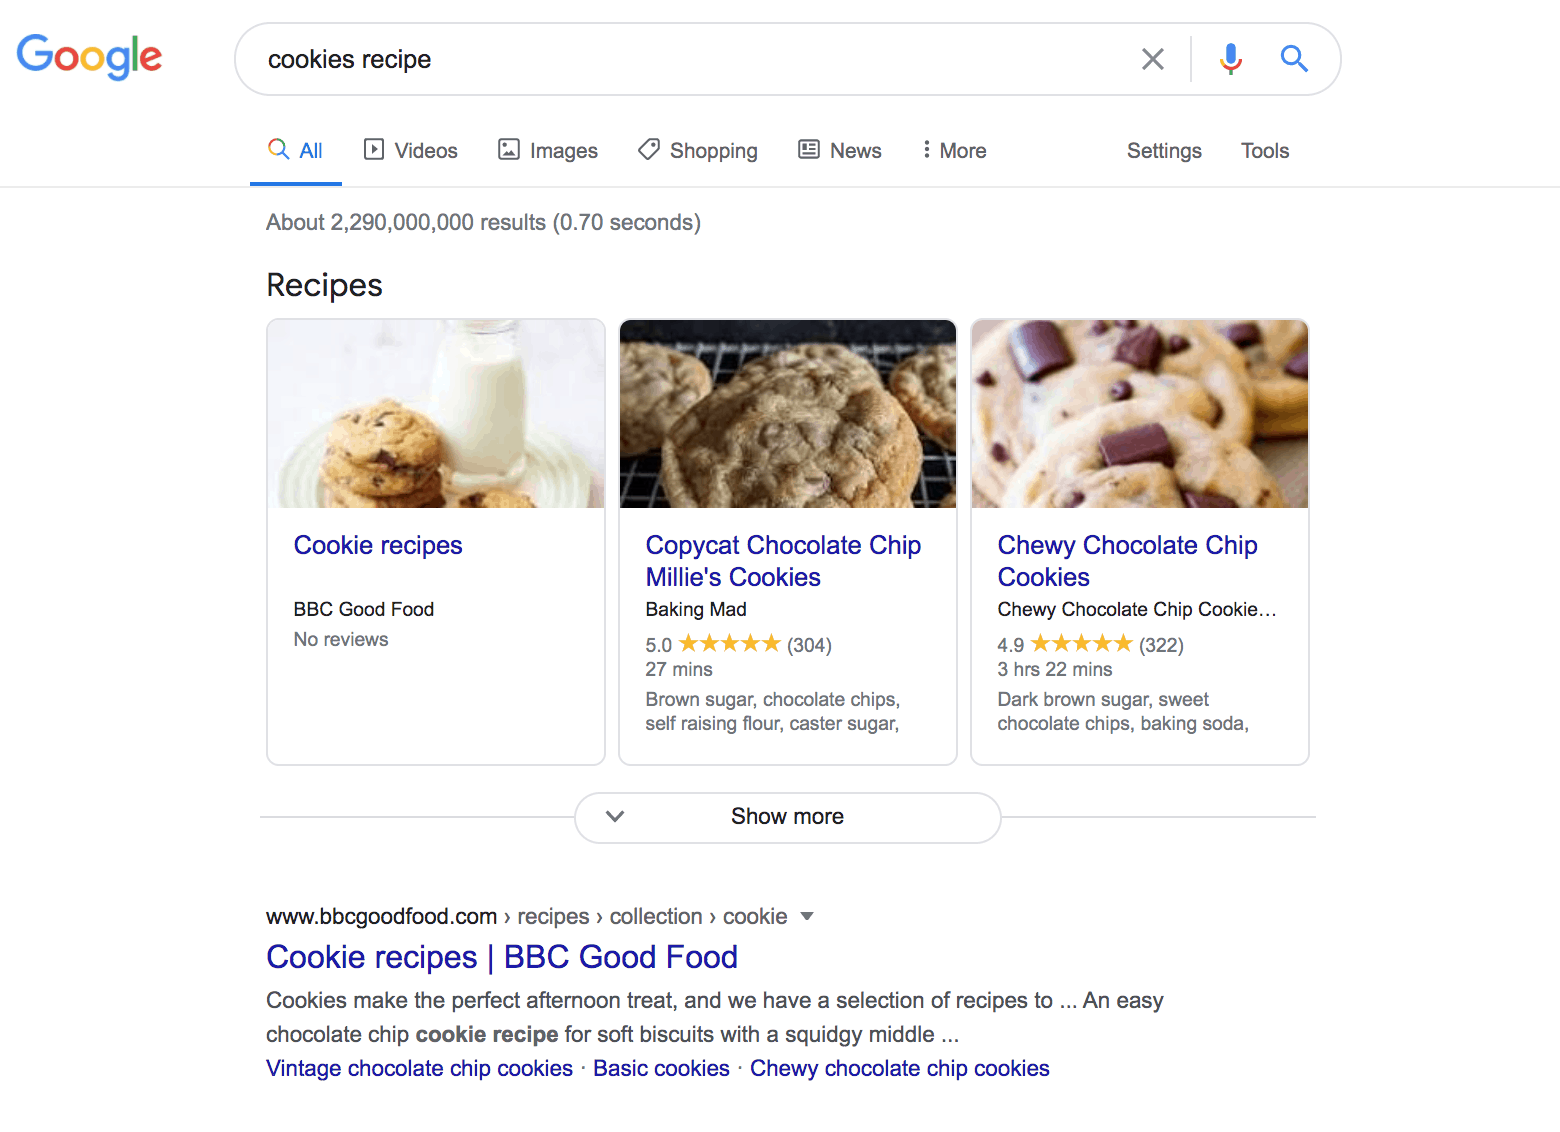 Google search results for cookies recipe